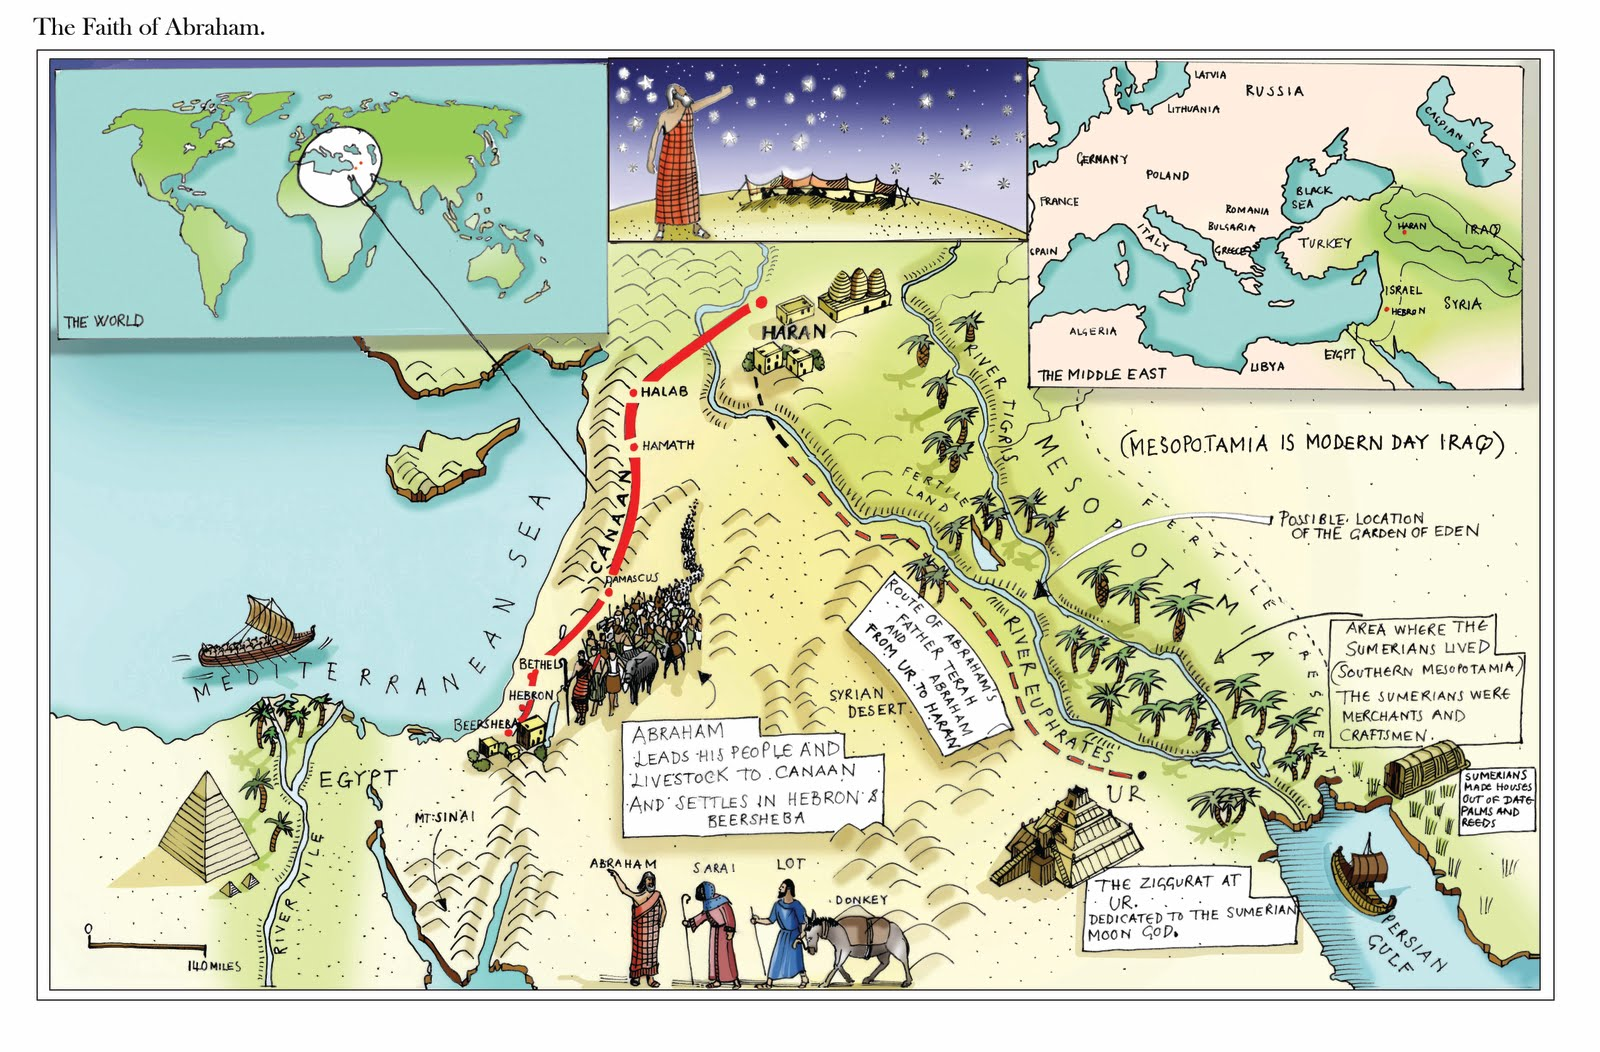 Take time to travel through the story family faith companion can sciox Gallery